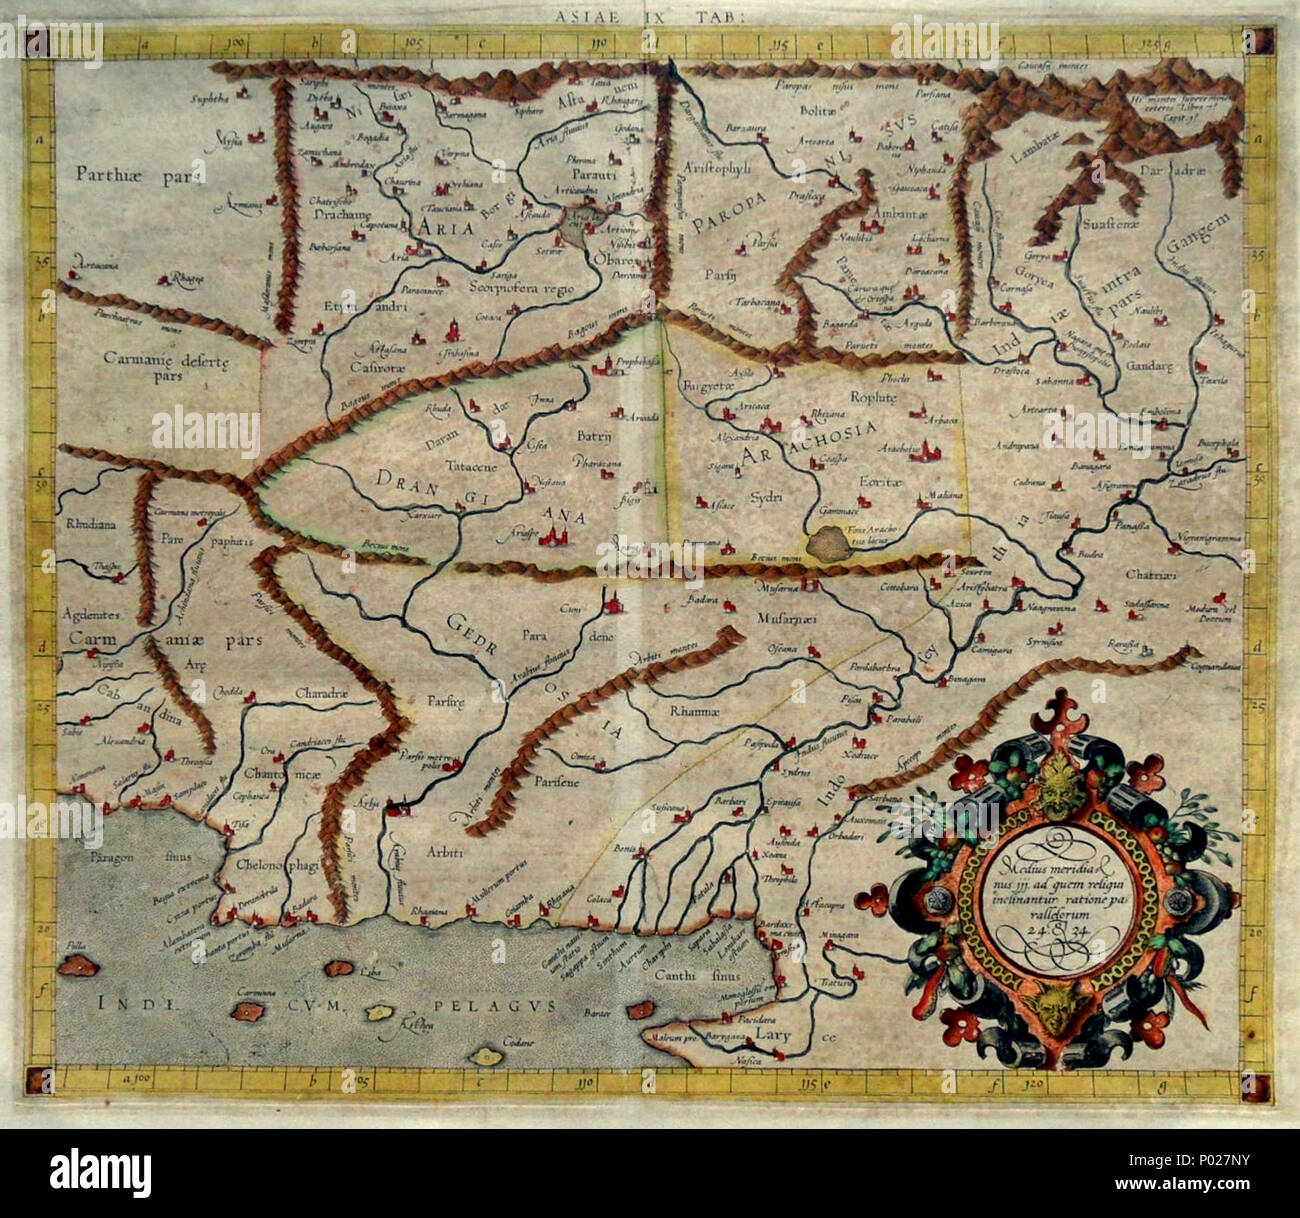 Indus River Map Stock Photos & Indus River Map Stock Images - Alamy